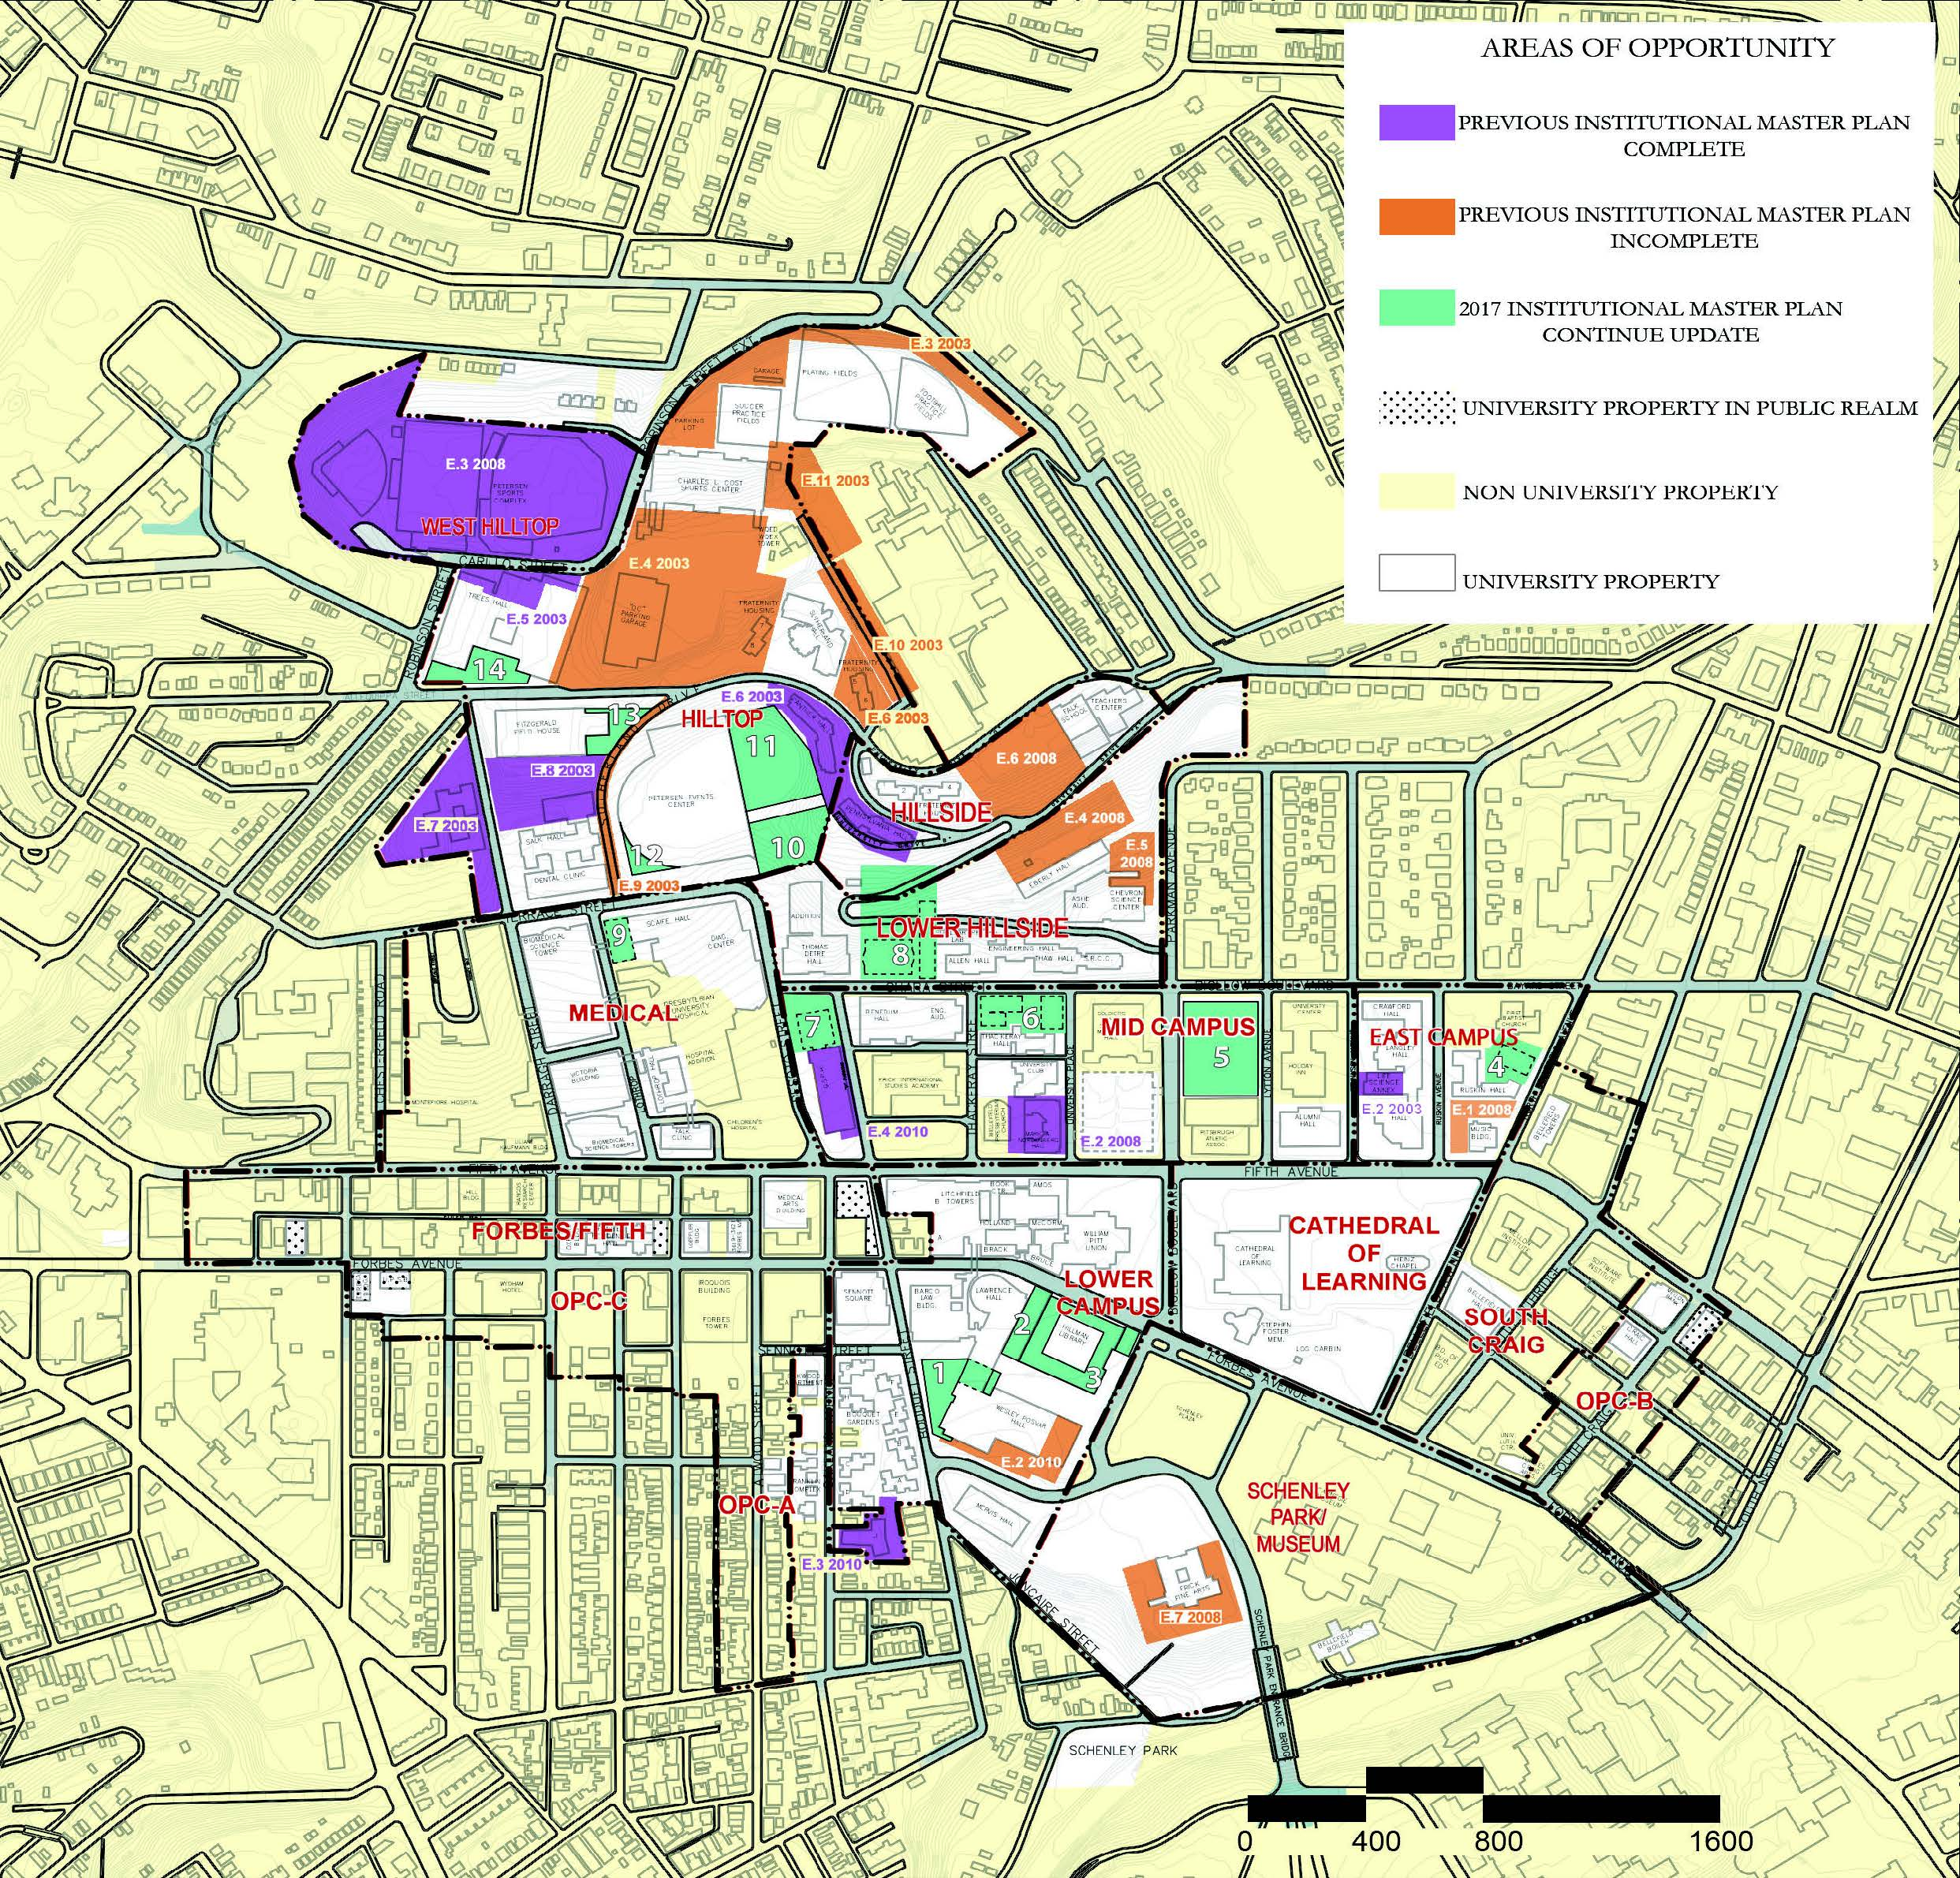 INSTITUTIONAL MASTER PLAN